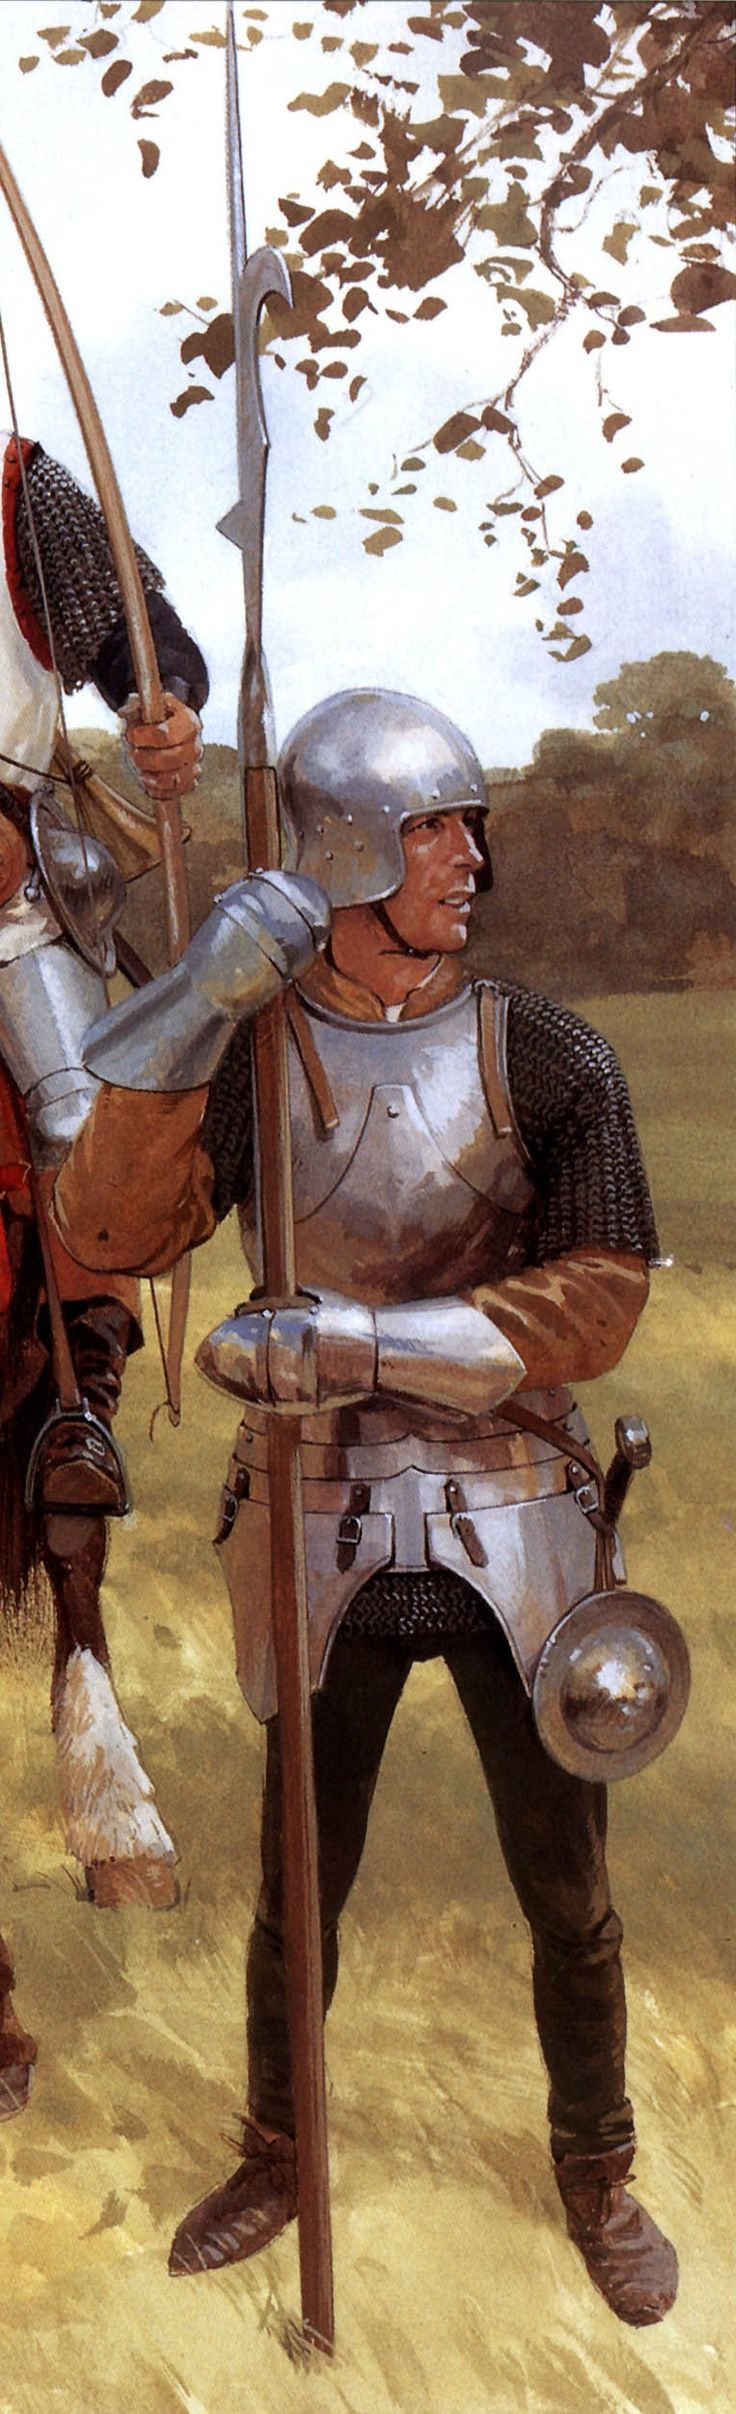 15th Century man at arms wielding a bill pole arm, used to unhorse cavalry.